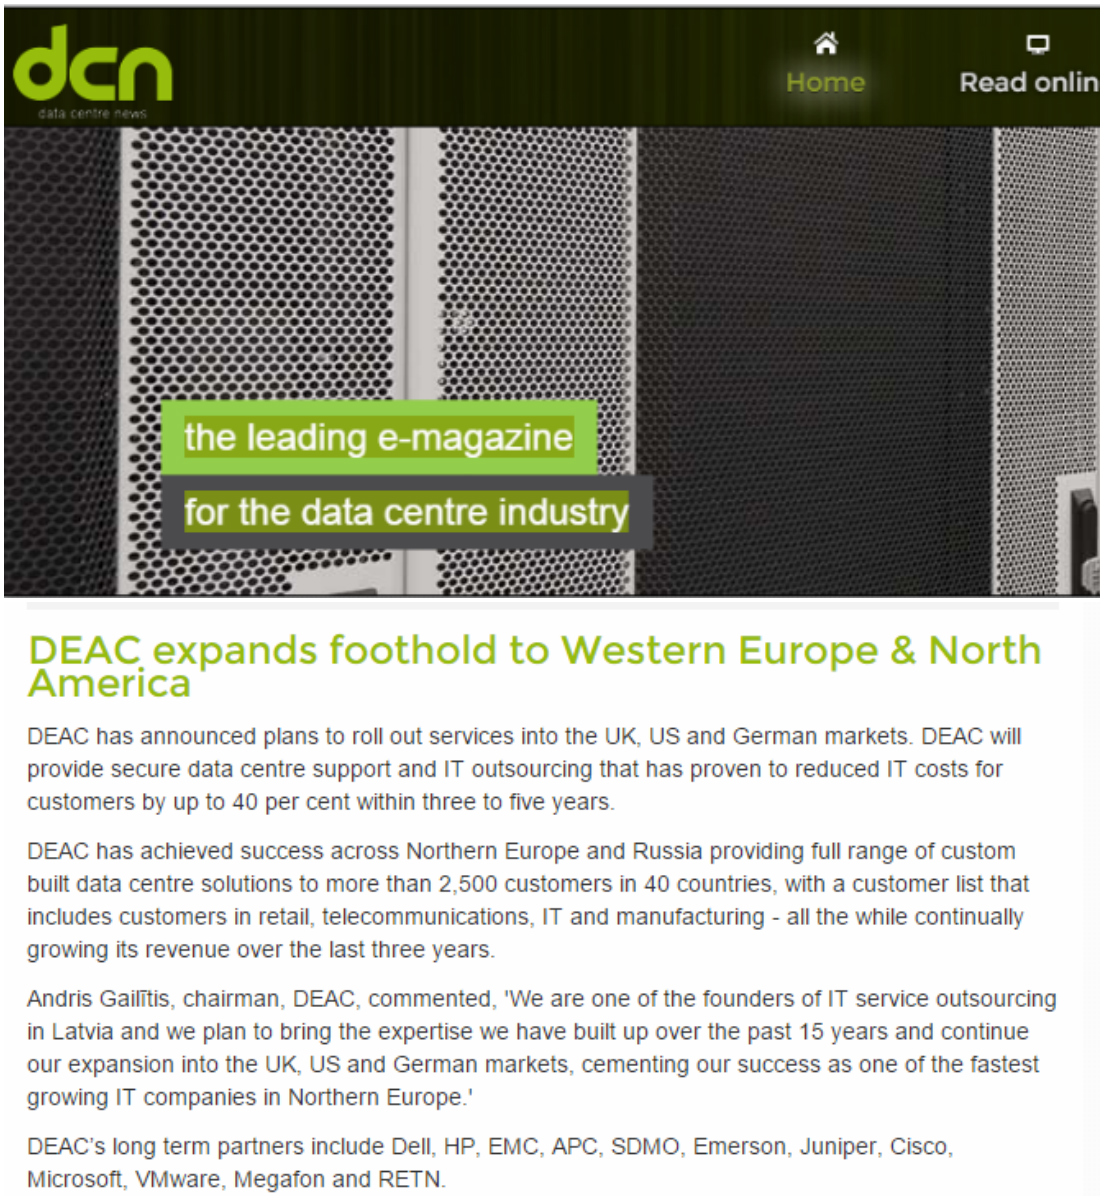 DEAC expands foothold to Western Europe & North America